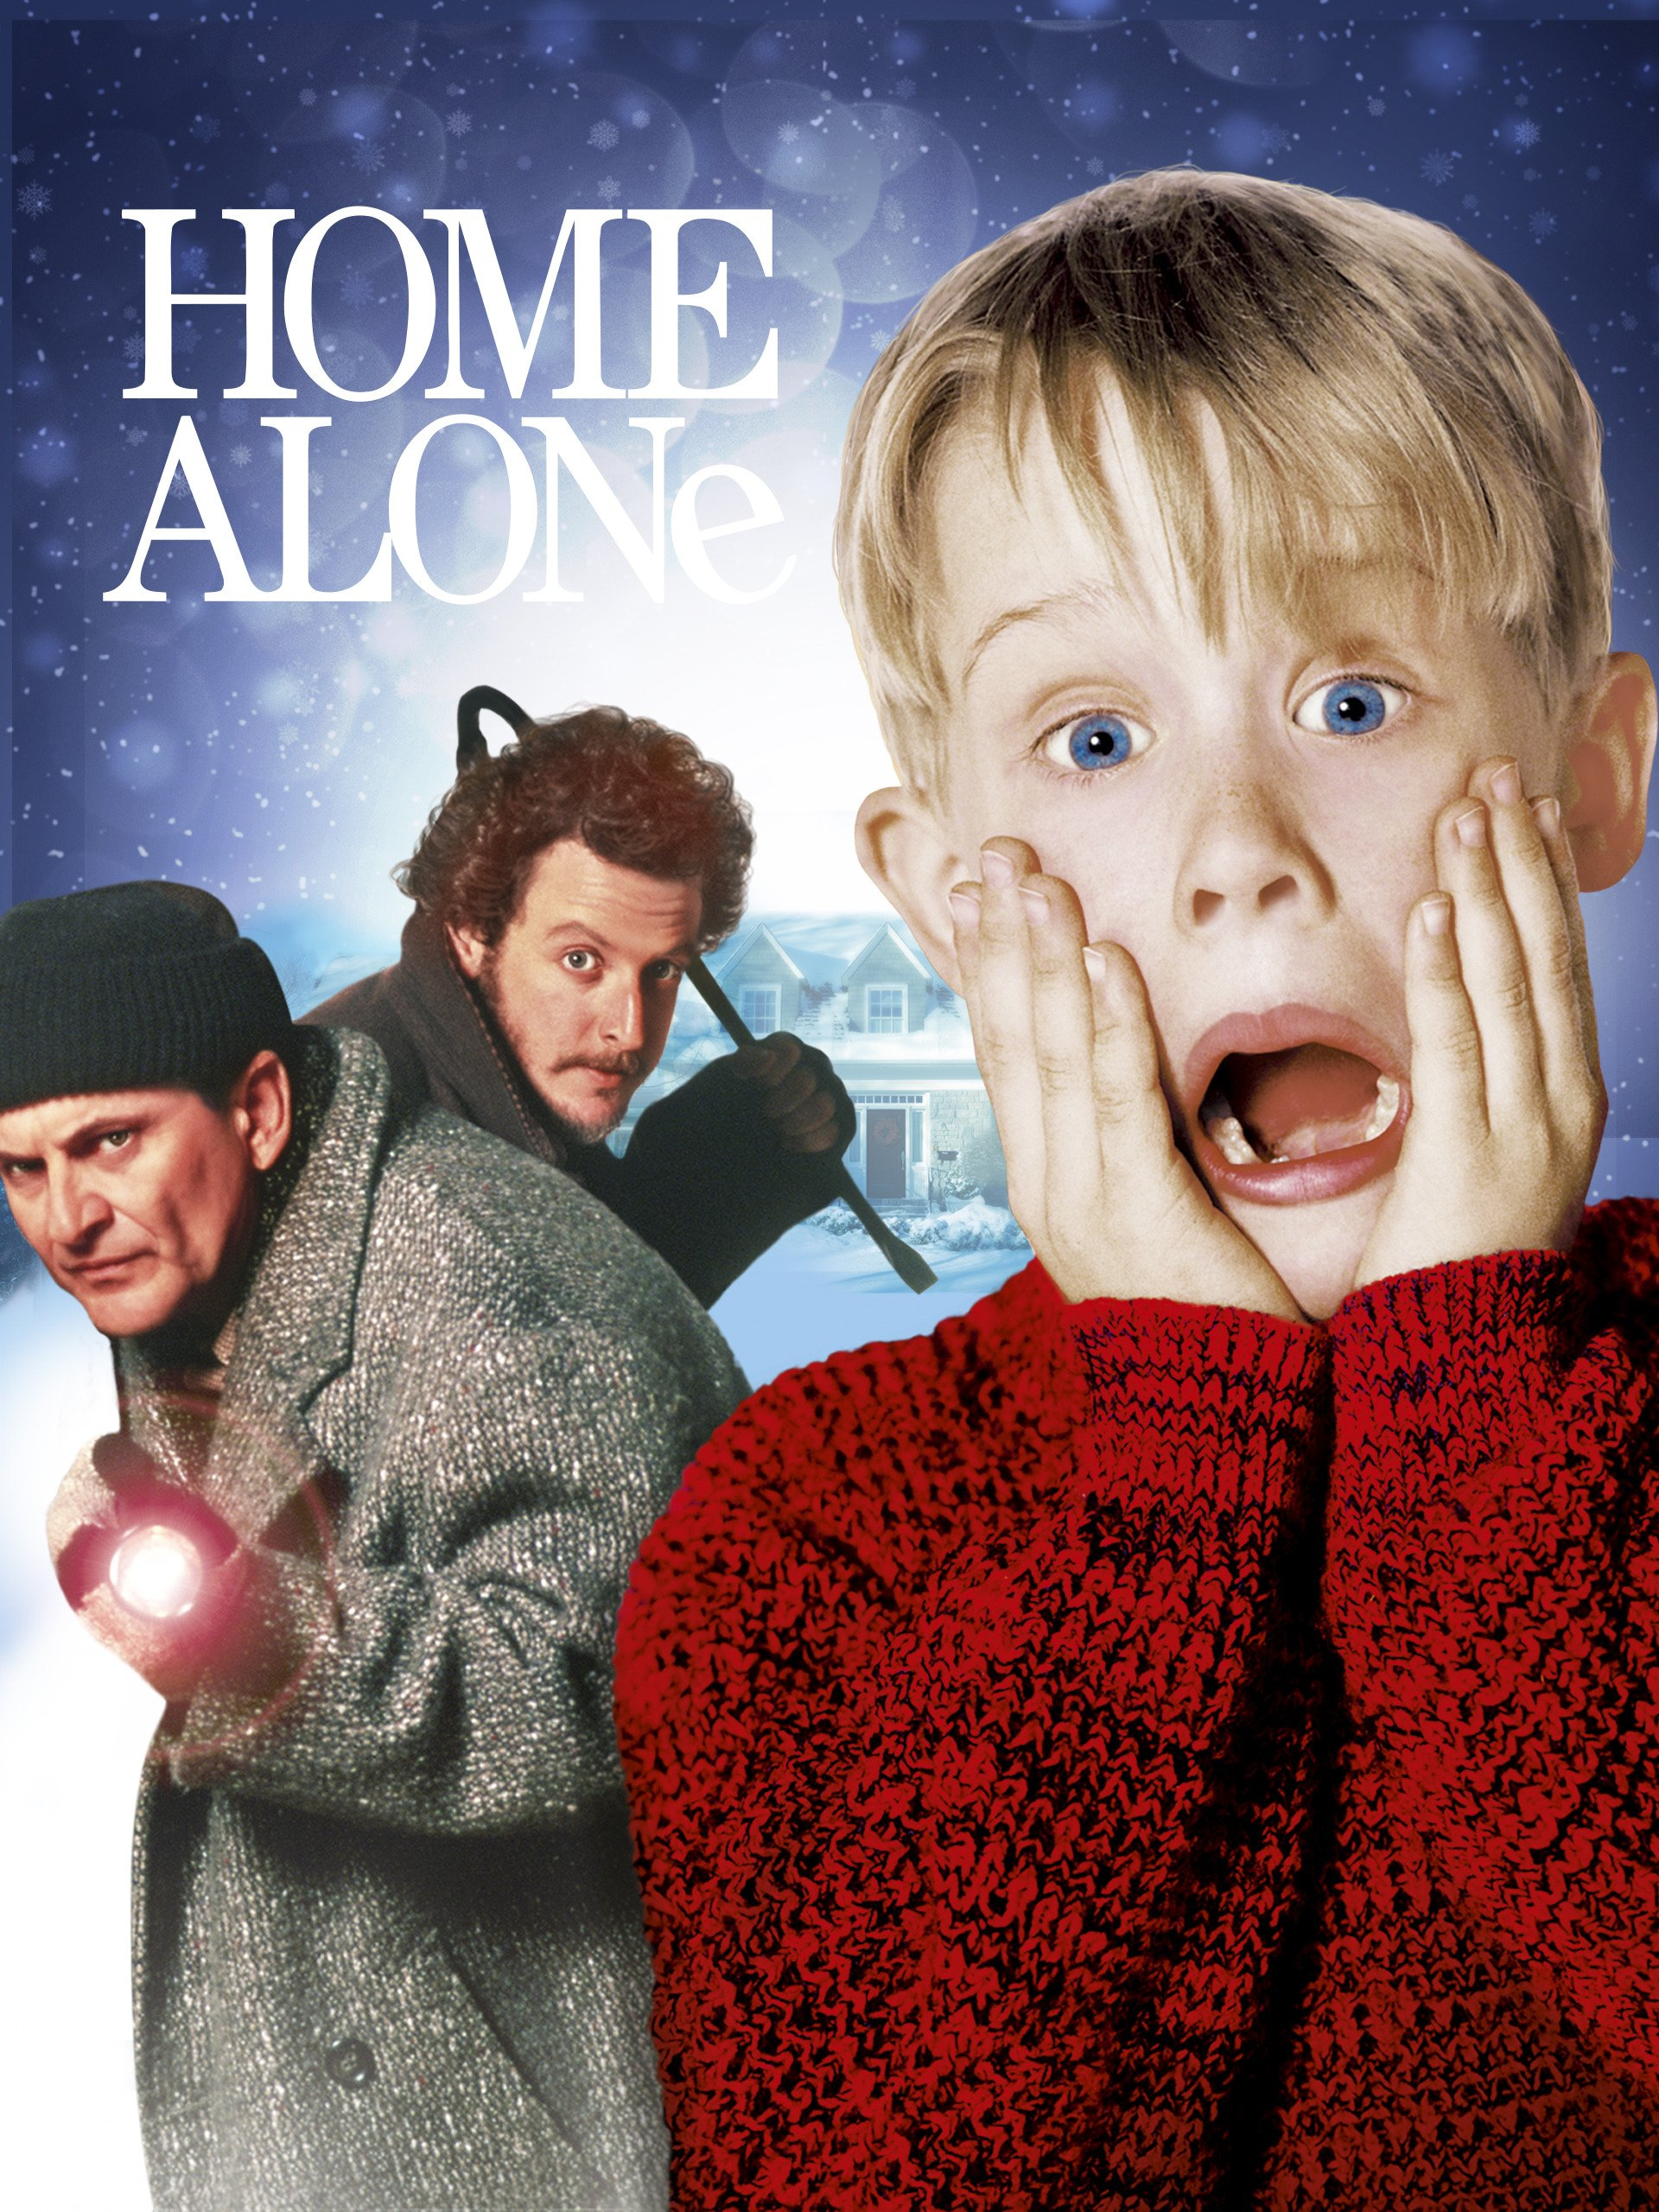 Home Alone Watch online now with Amazon Instant Video Catherine